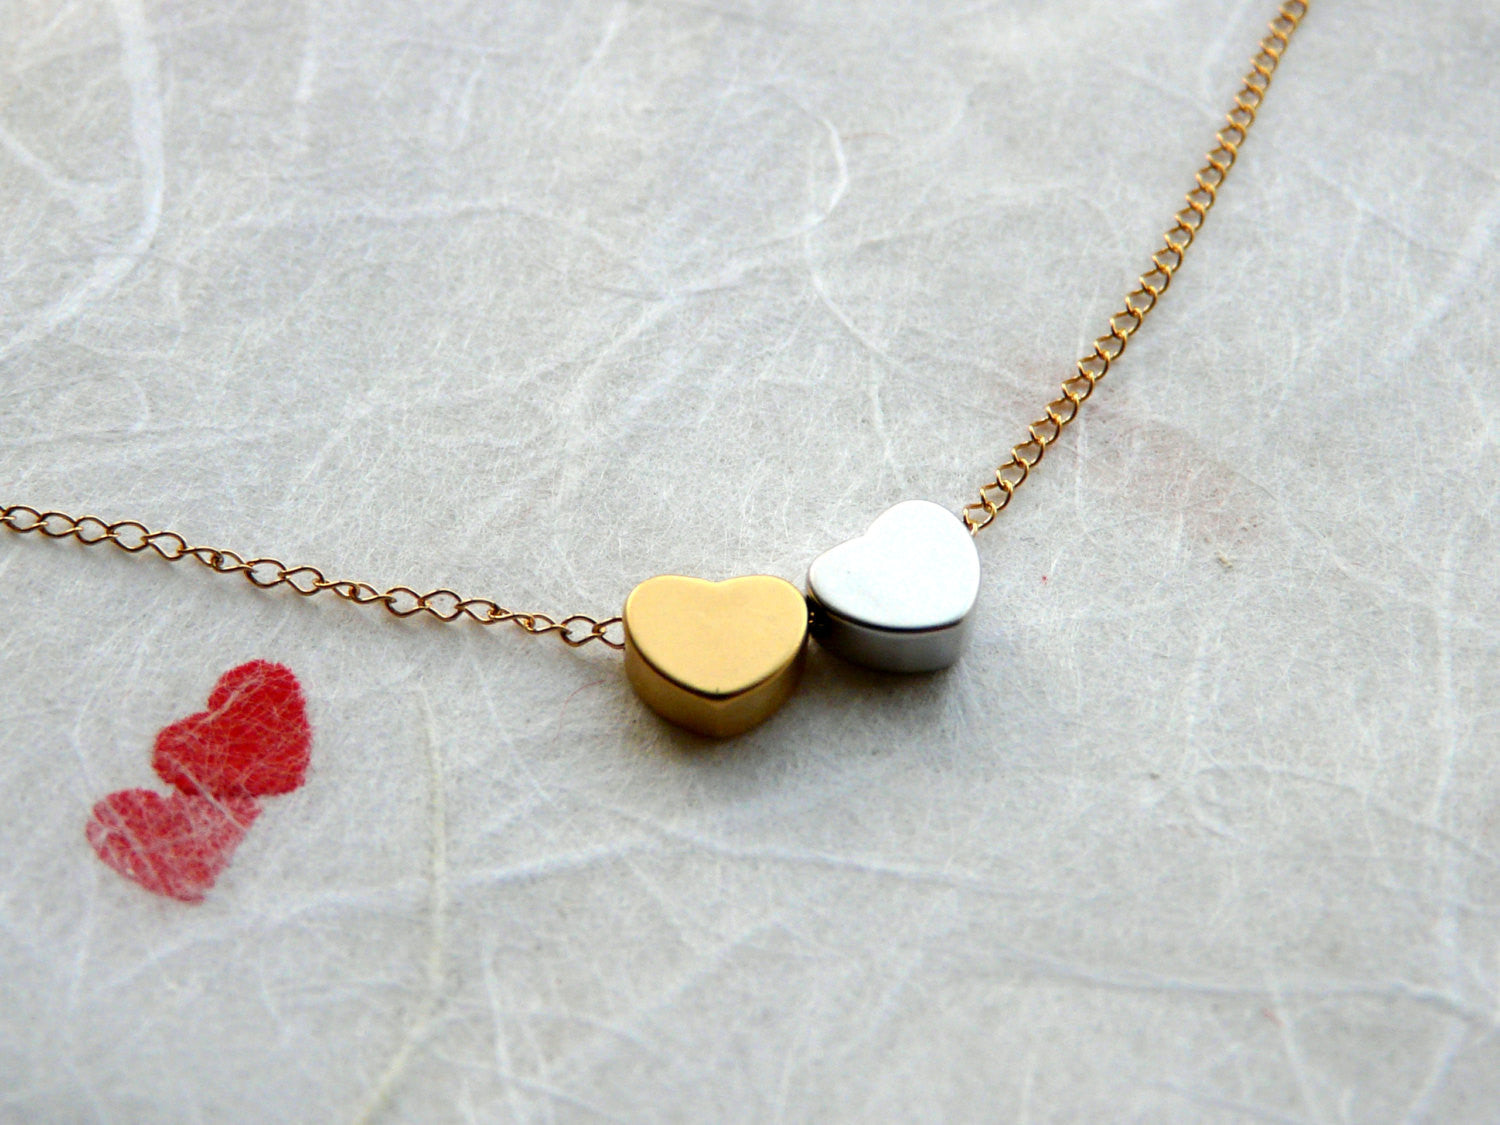 Love story necklace - OpaLandJewelry